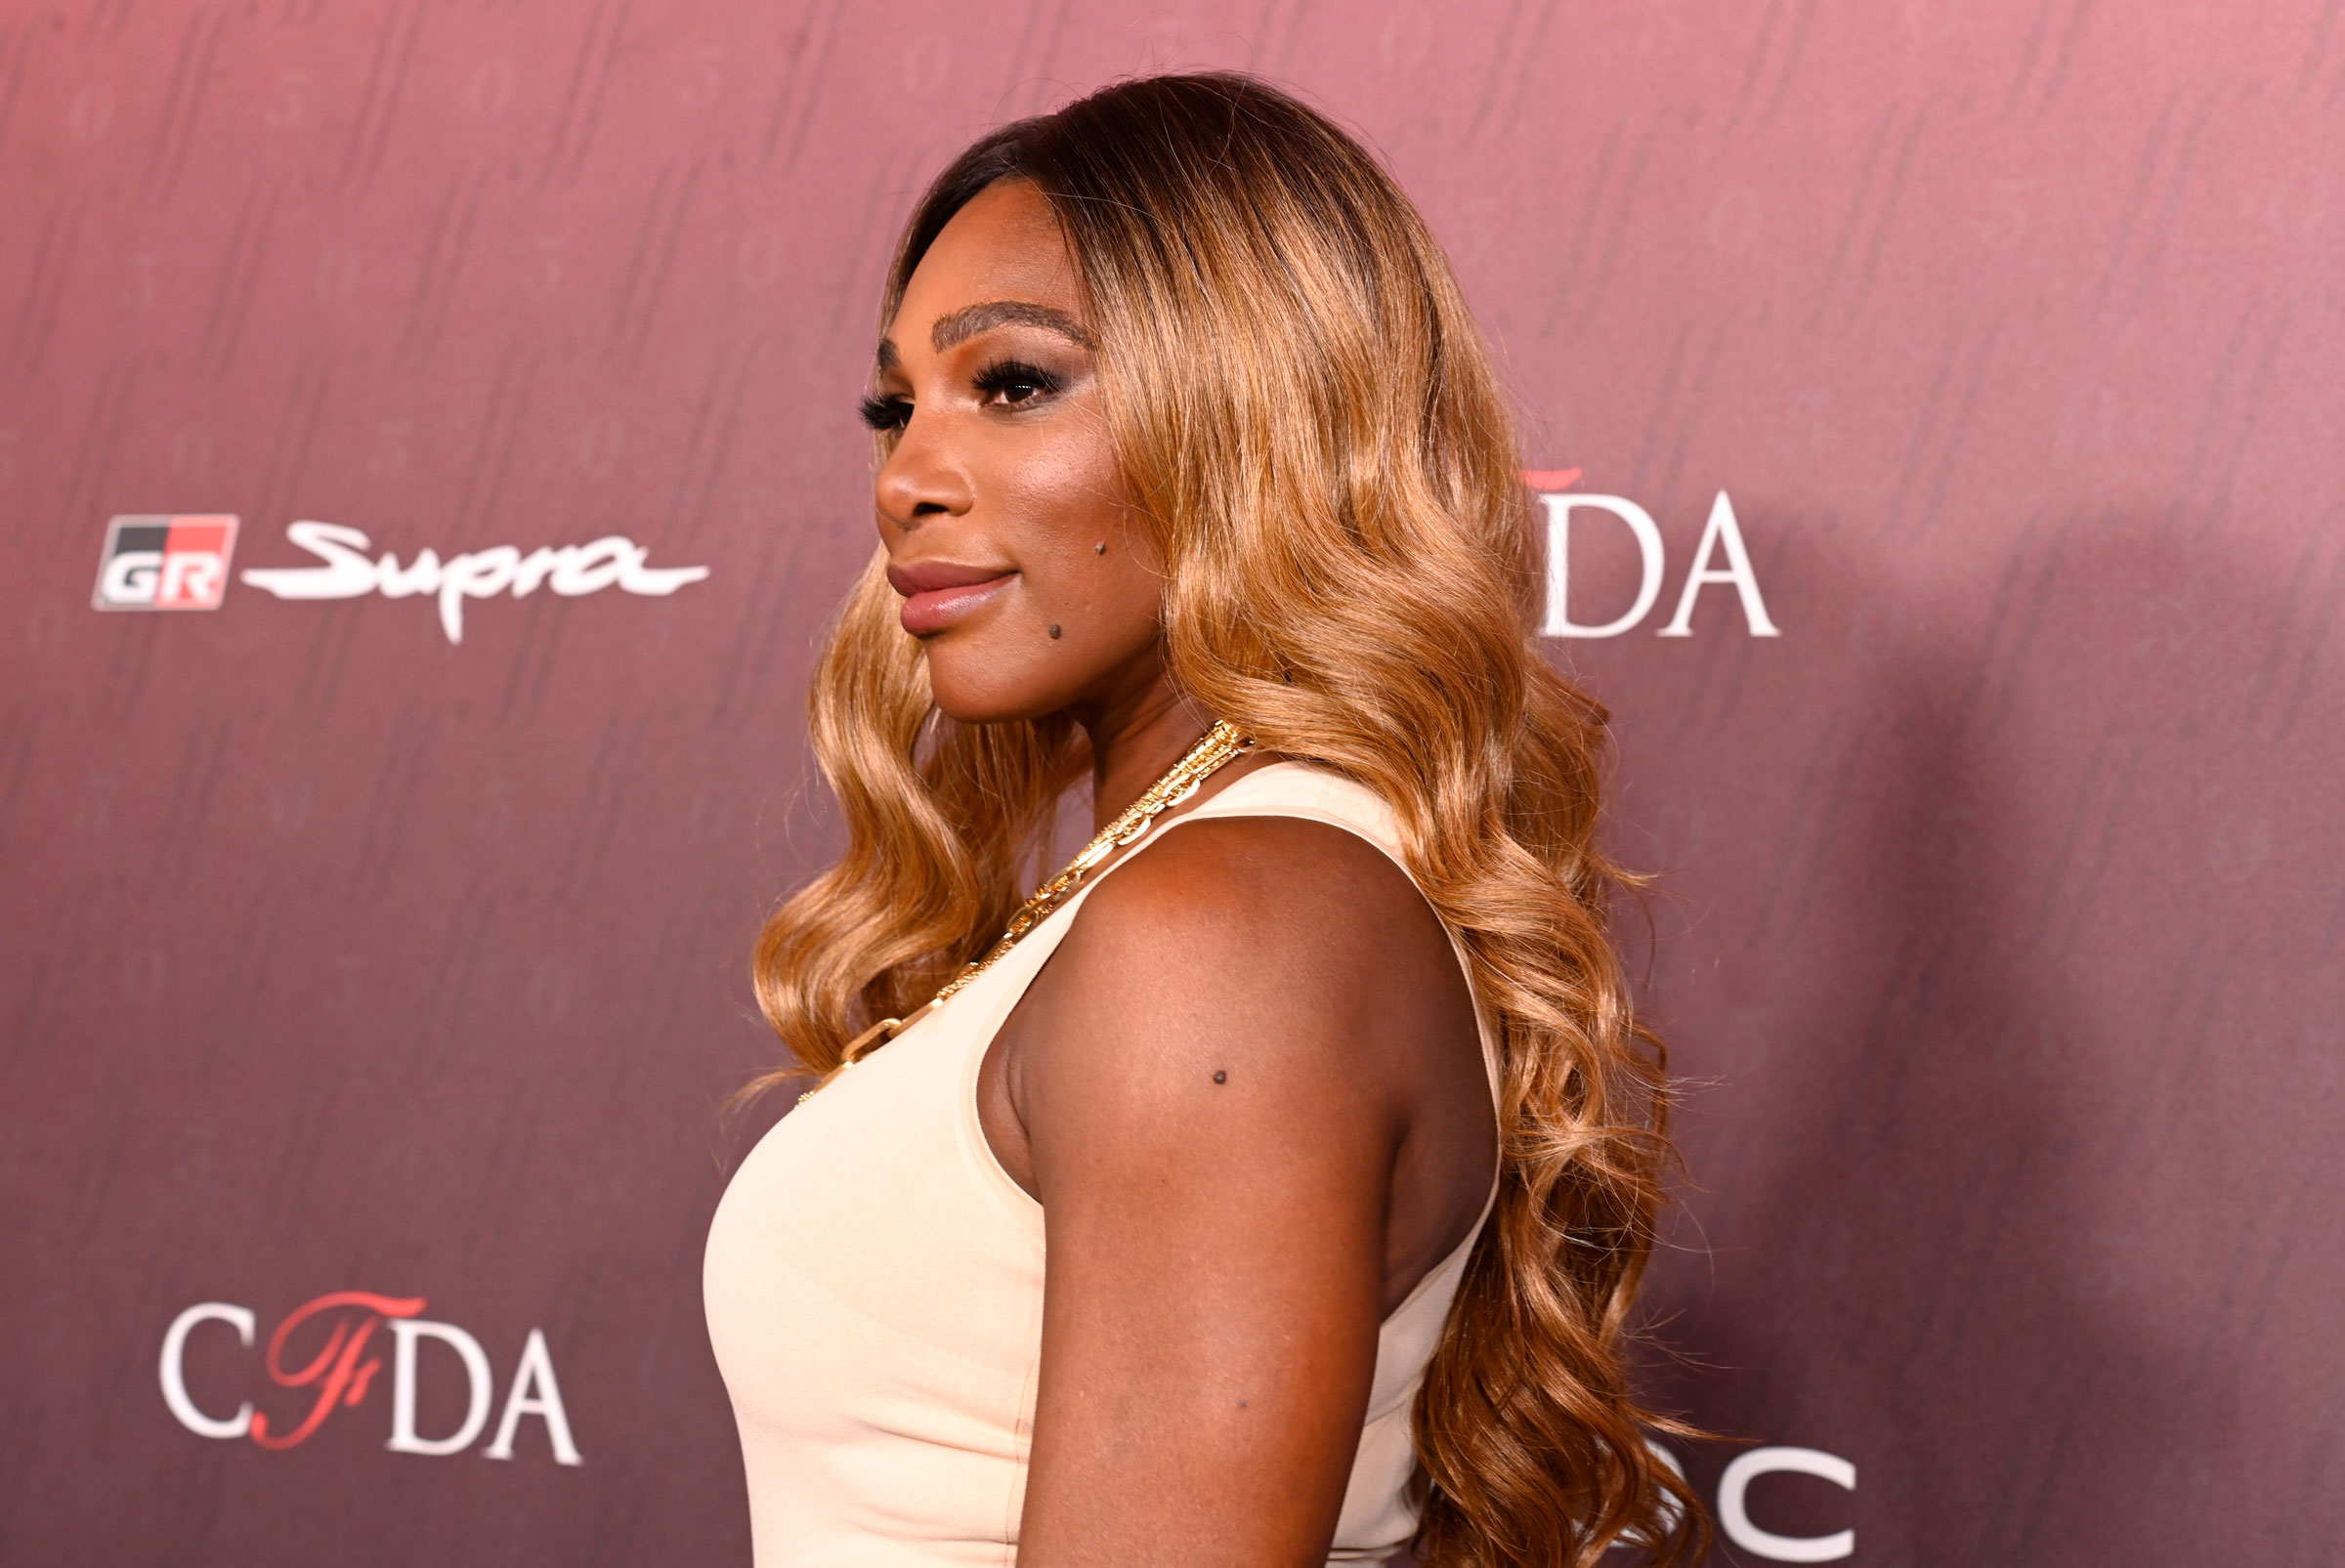 Serena Williams, a dark-skinned Black woman wearing blond, curly hair, poses on a red carpet